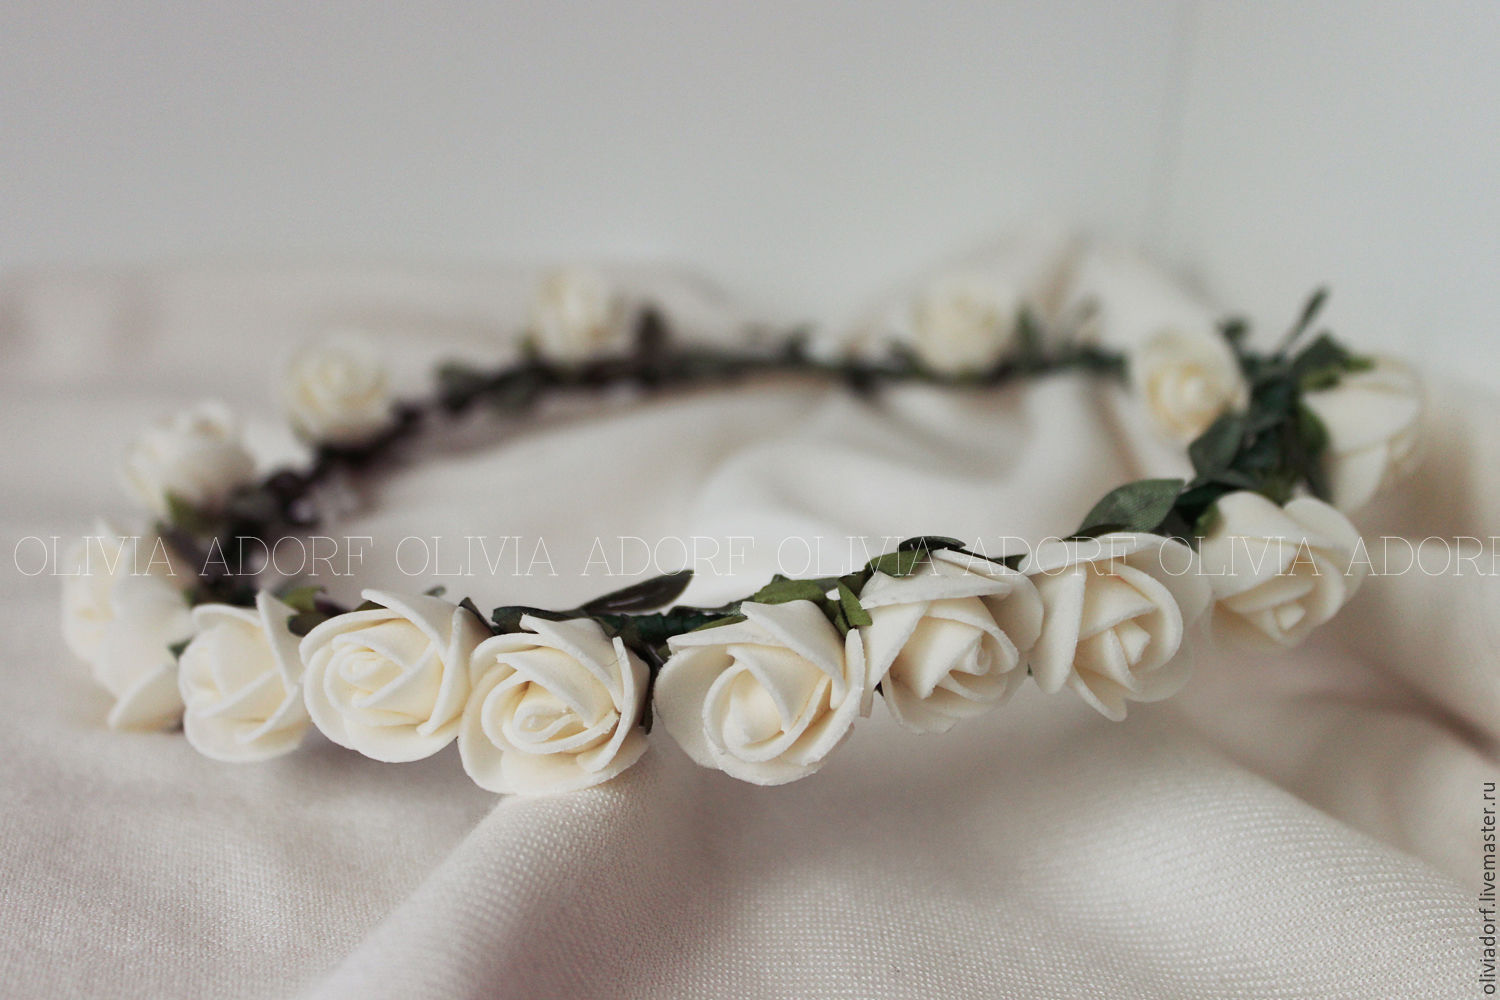 Flower Crown with White Roses